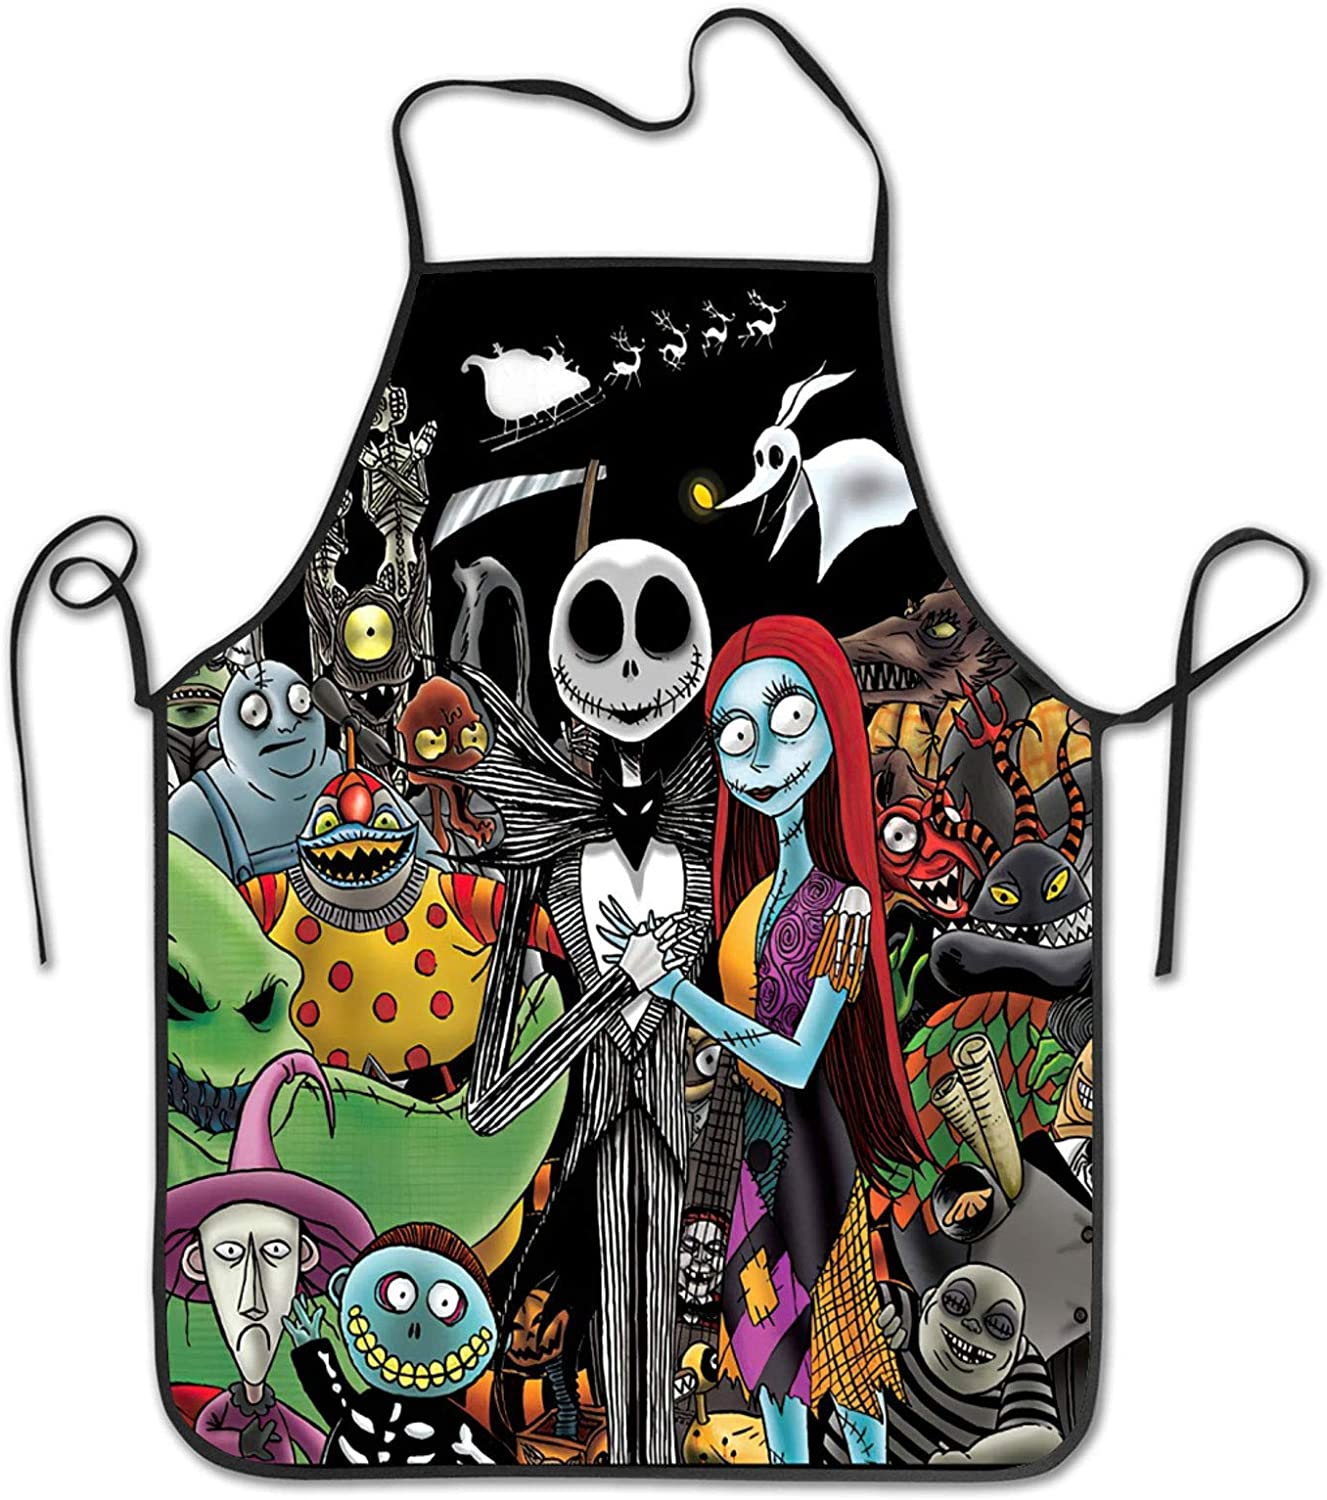 HADUOC The Nightmare Before Christmas Aprons Unisex Apron Kitchen Cook Bib BBQ Apron, 4, adults